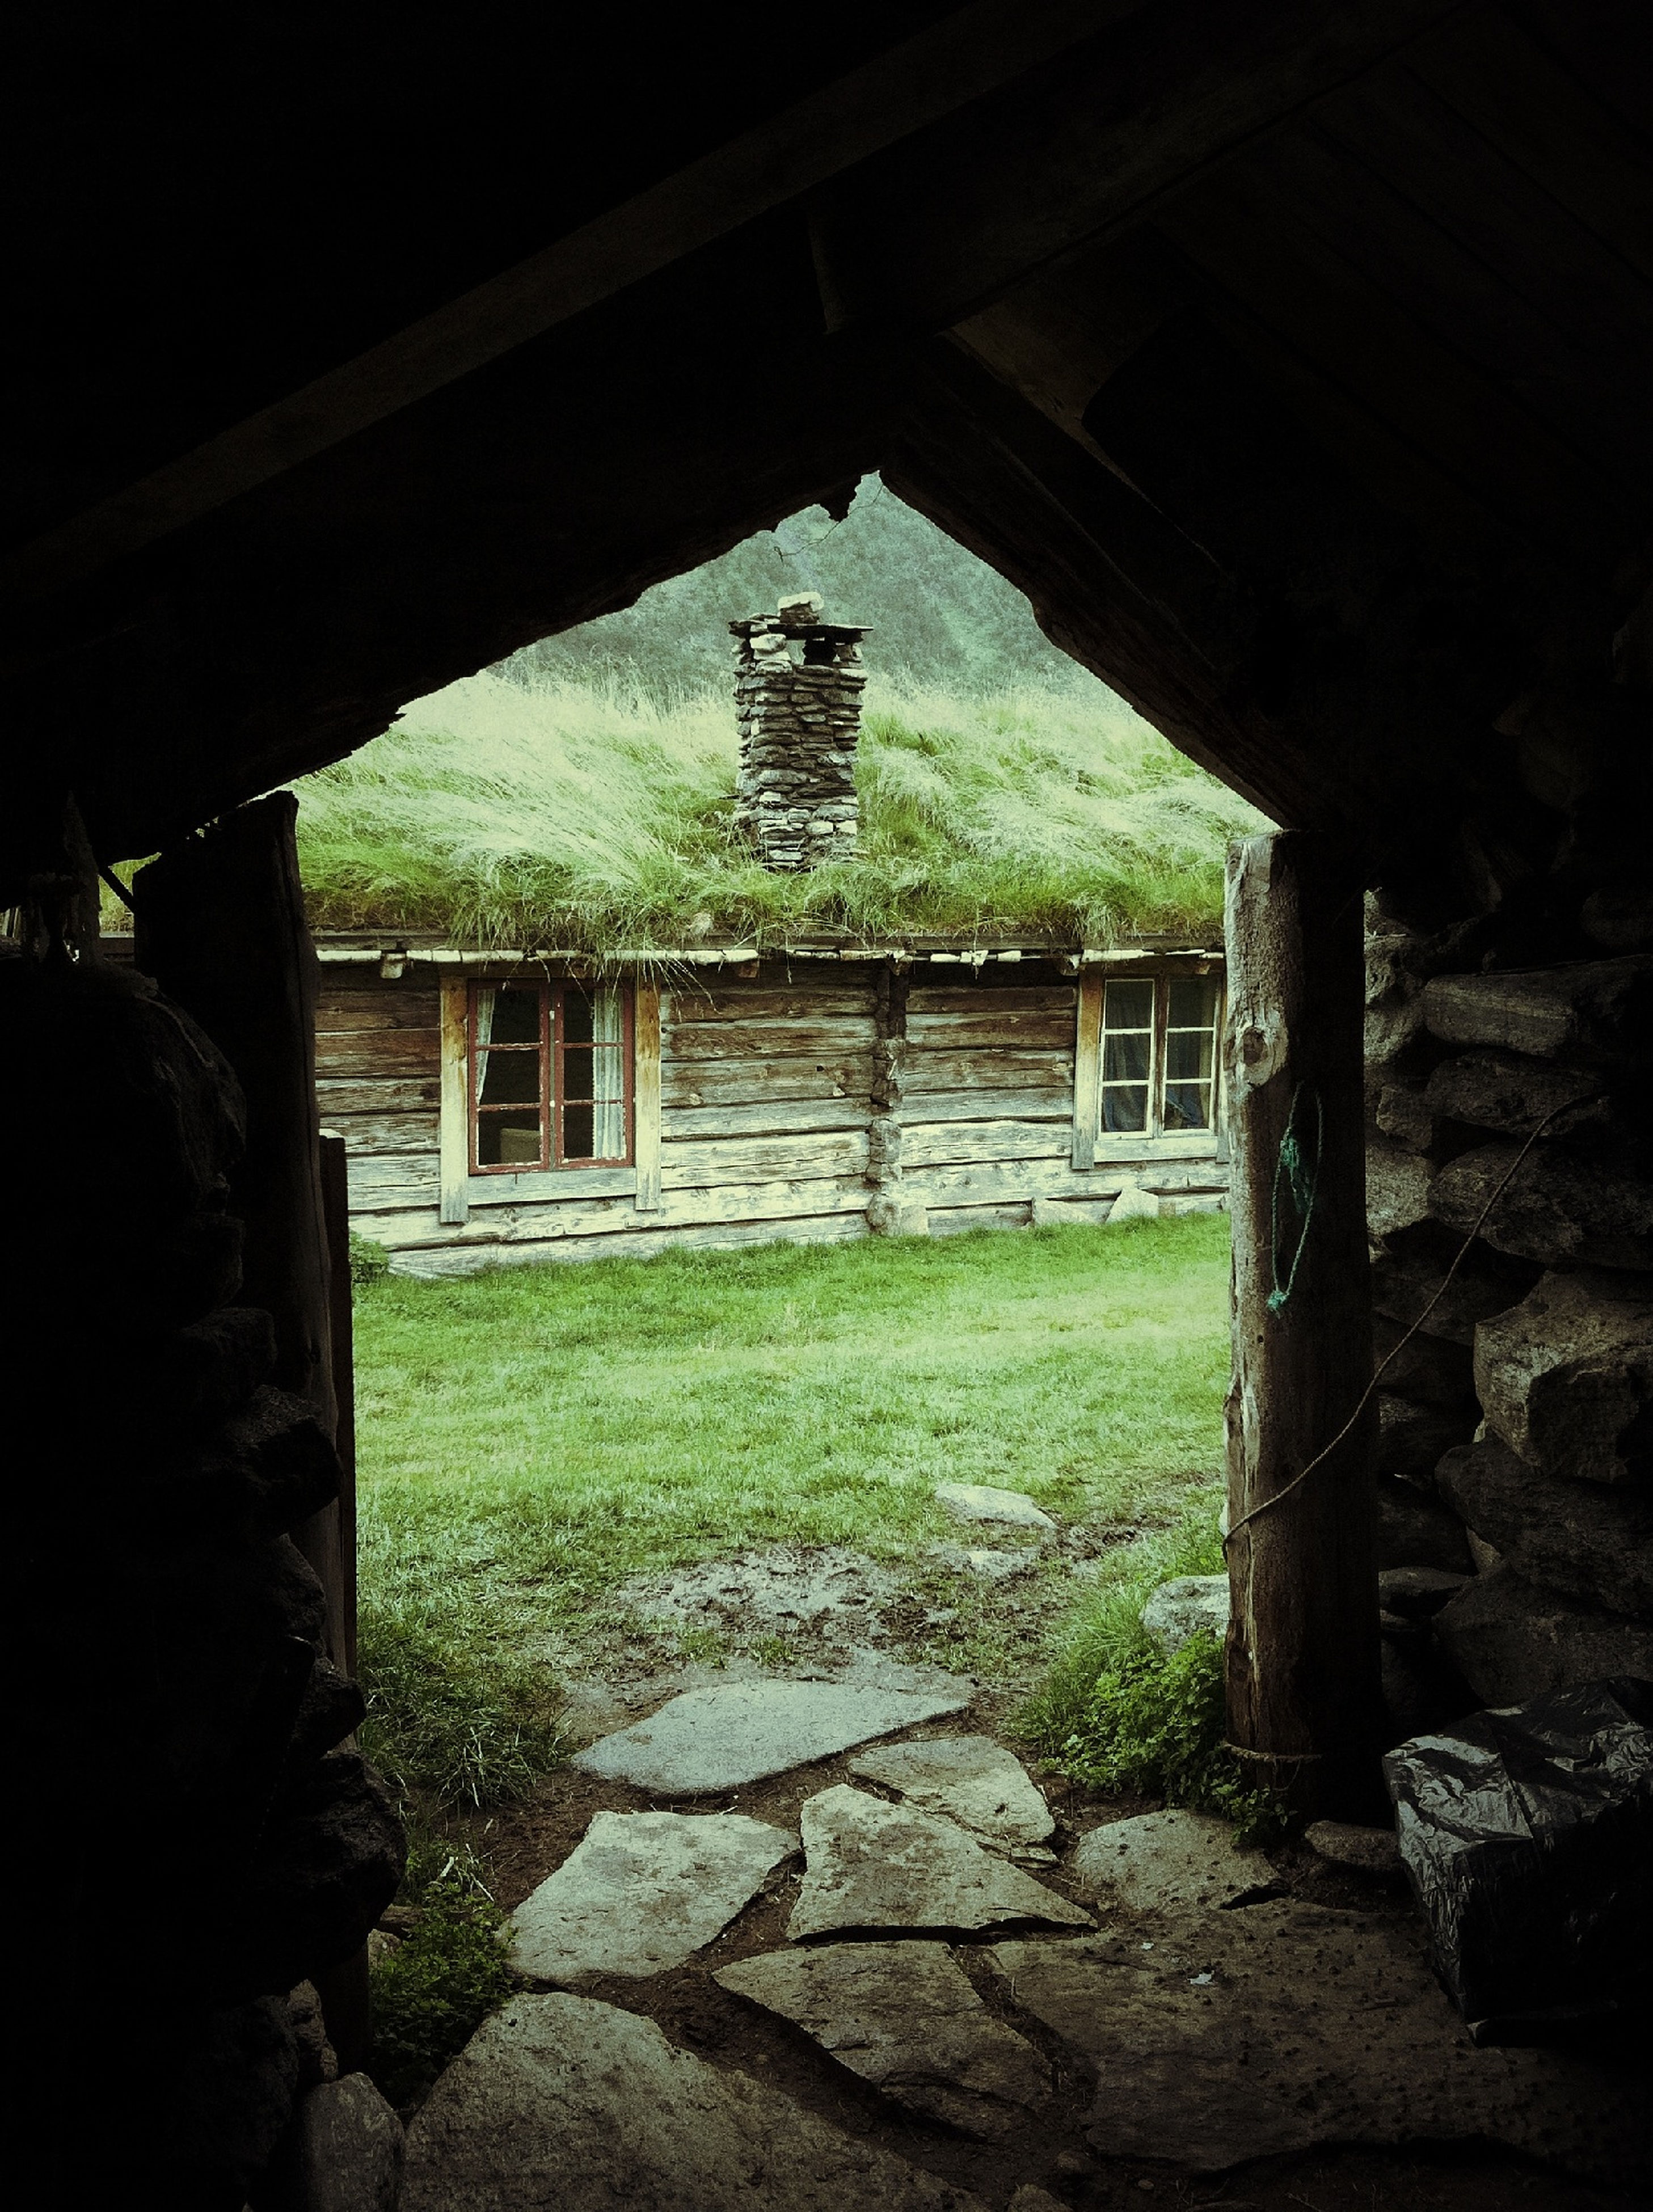 architecture, built structure, old ruin, history, abandoned, old, building exterior, grass, stone wall, obsolete, damaged, the past, indoors, ruined, run-down, stone material, tree, deterioration, ancient, arch